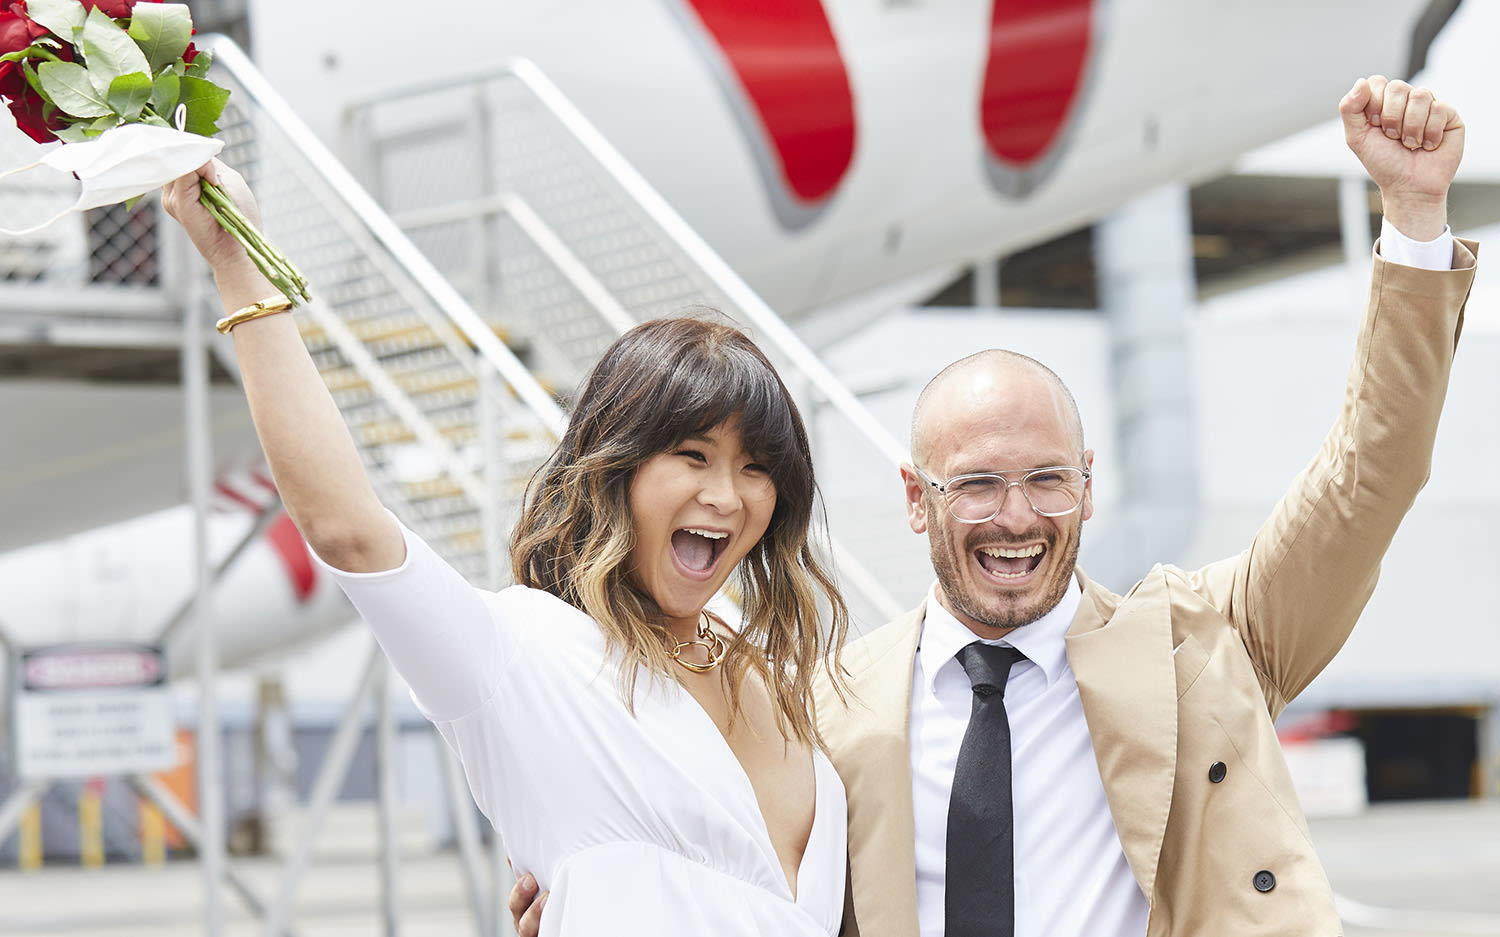 Elaine and Luke Serdar celebrate their onboard wedding